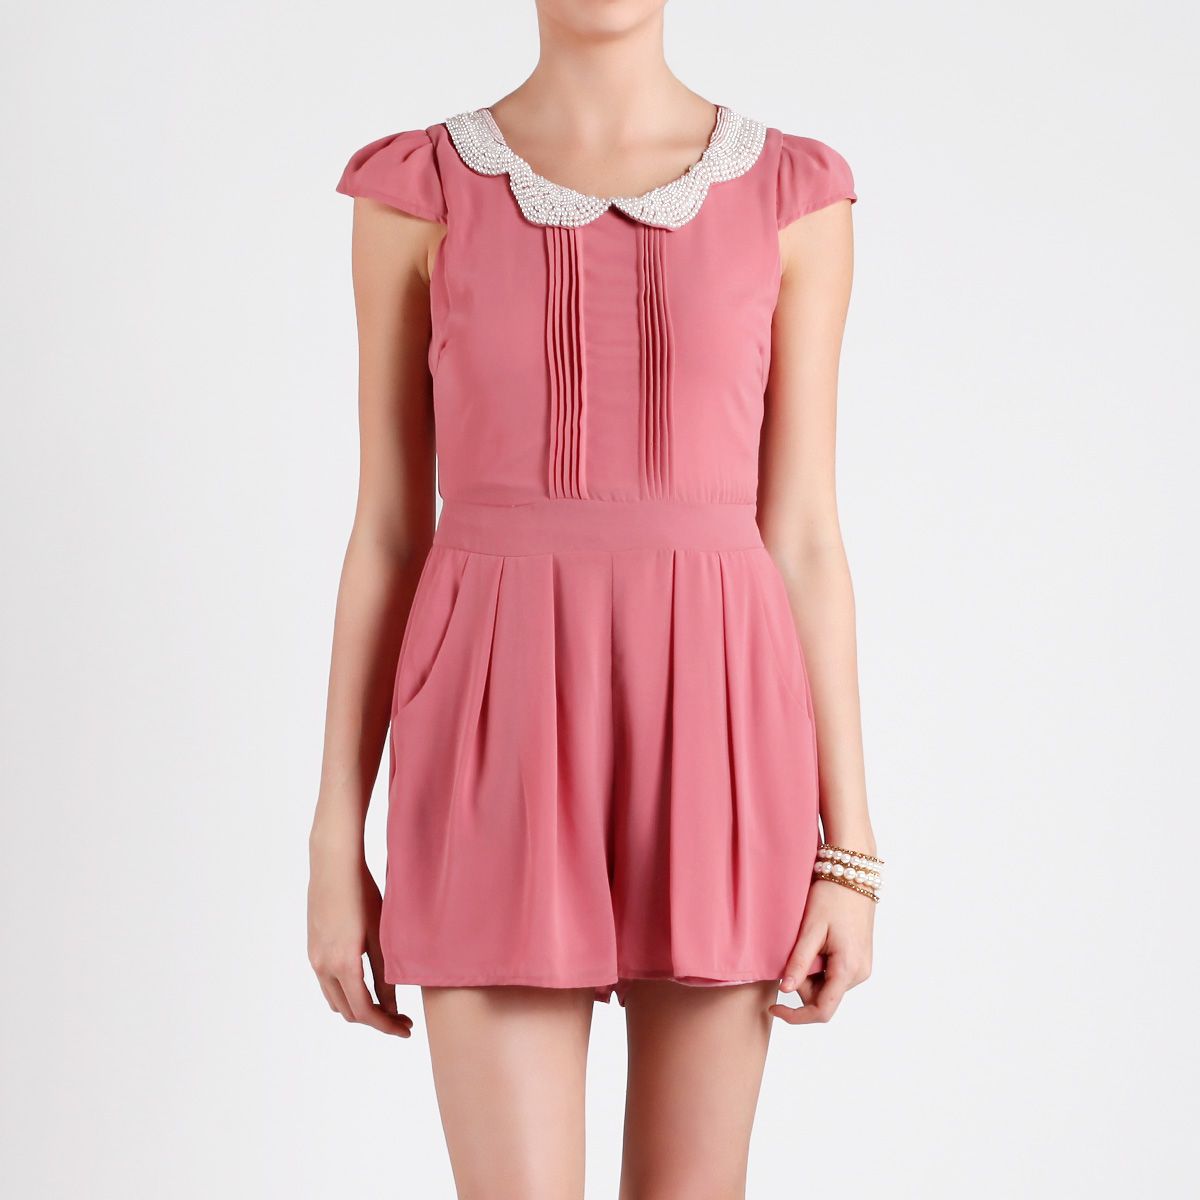 c298bb29e5d Peter Pan Beaded Collar Romper in Pink